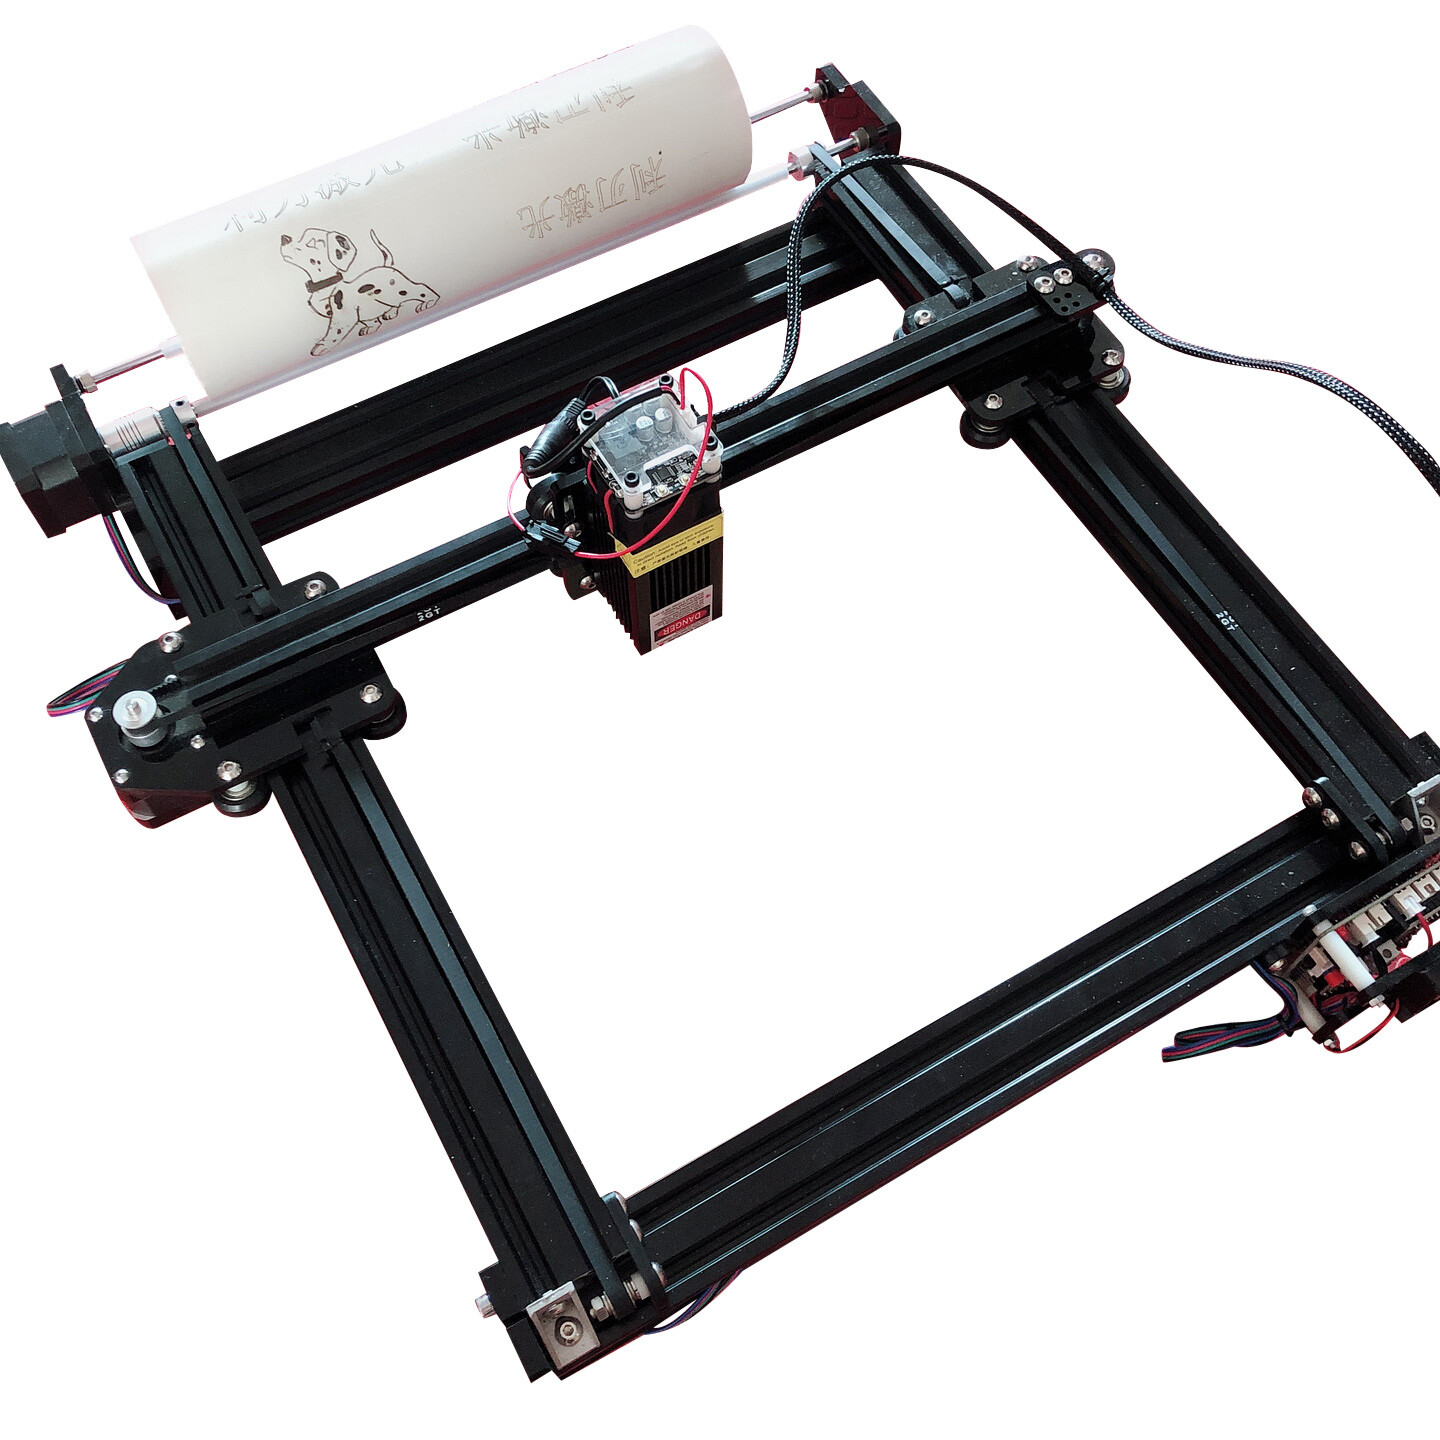 Laseraxe Desktop Laser Engraver with self A-axis design can engraving cylinder support CAD 21X29cm area 500mW-7000mW